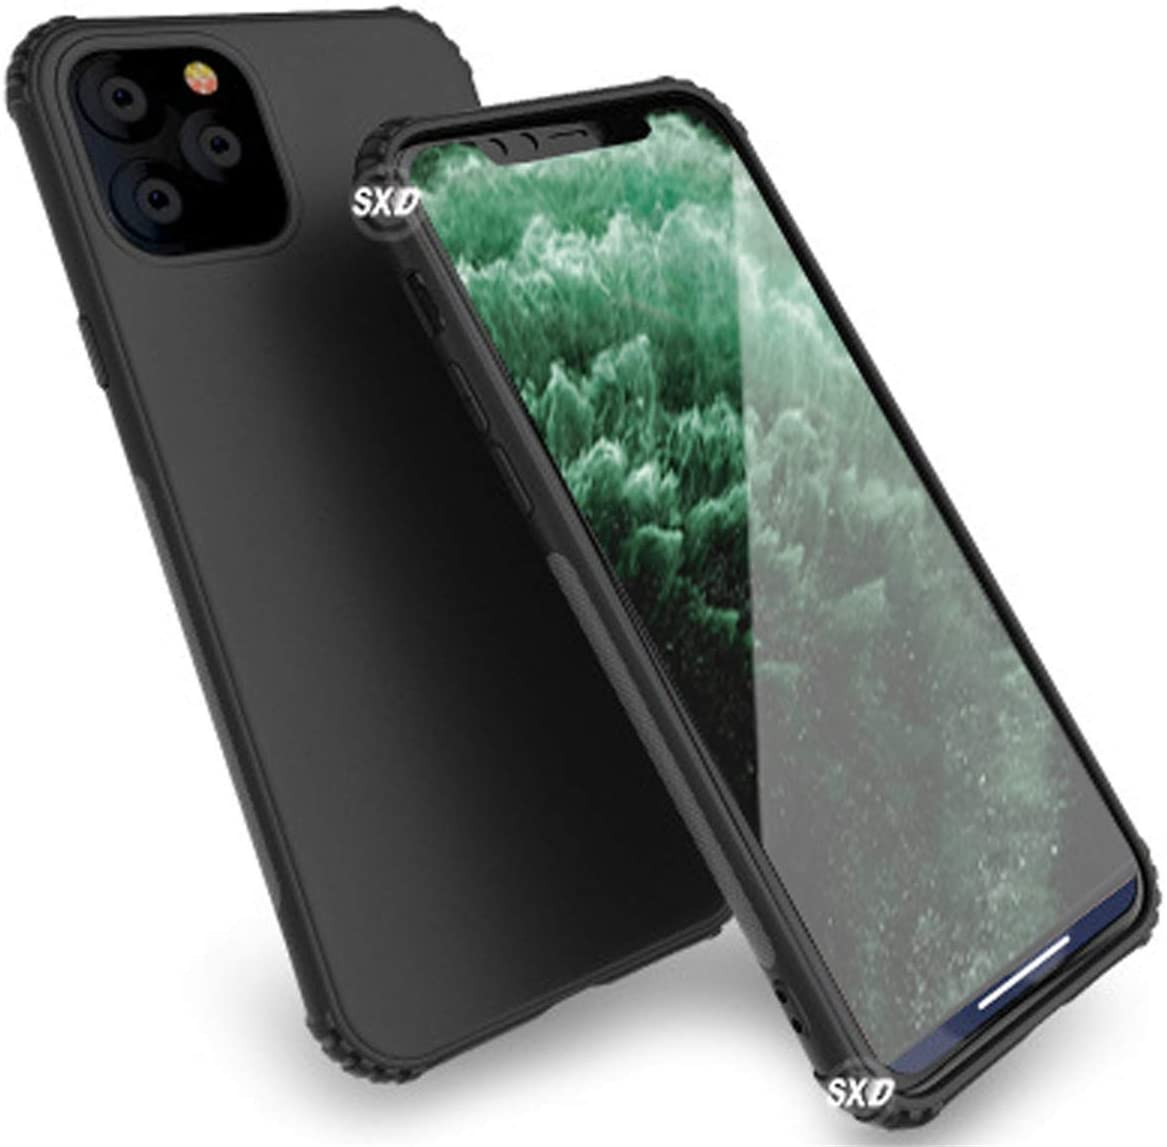 Compatible with iPhone 11 Pro Max Case Shockproof, Clear Hard PC with Soft TPU Edges, Protective Case Designed for iPhone 11 Pro Max 6.5